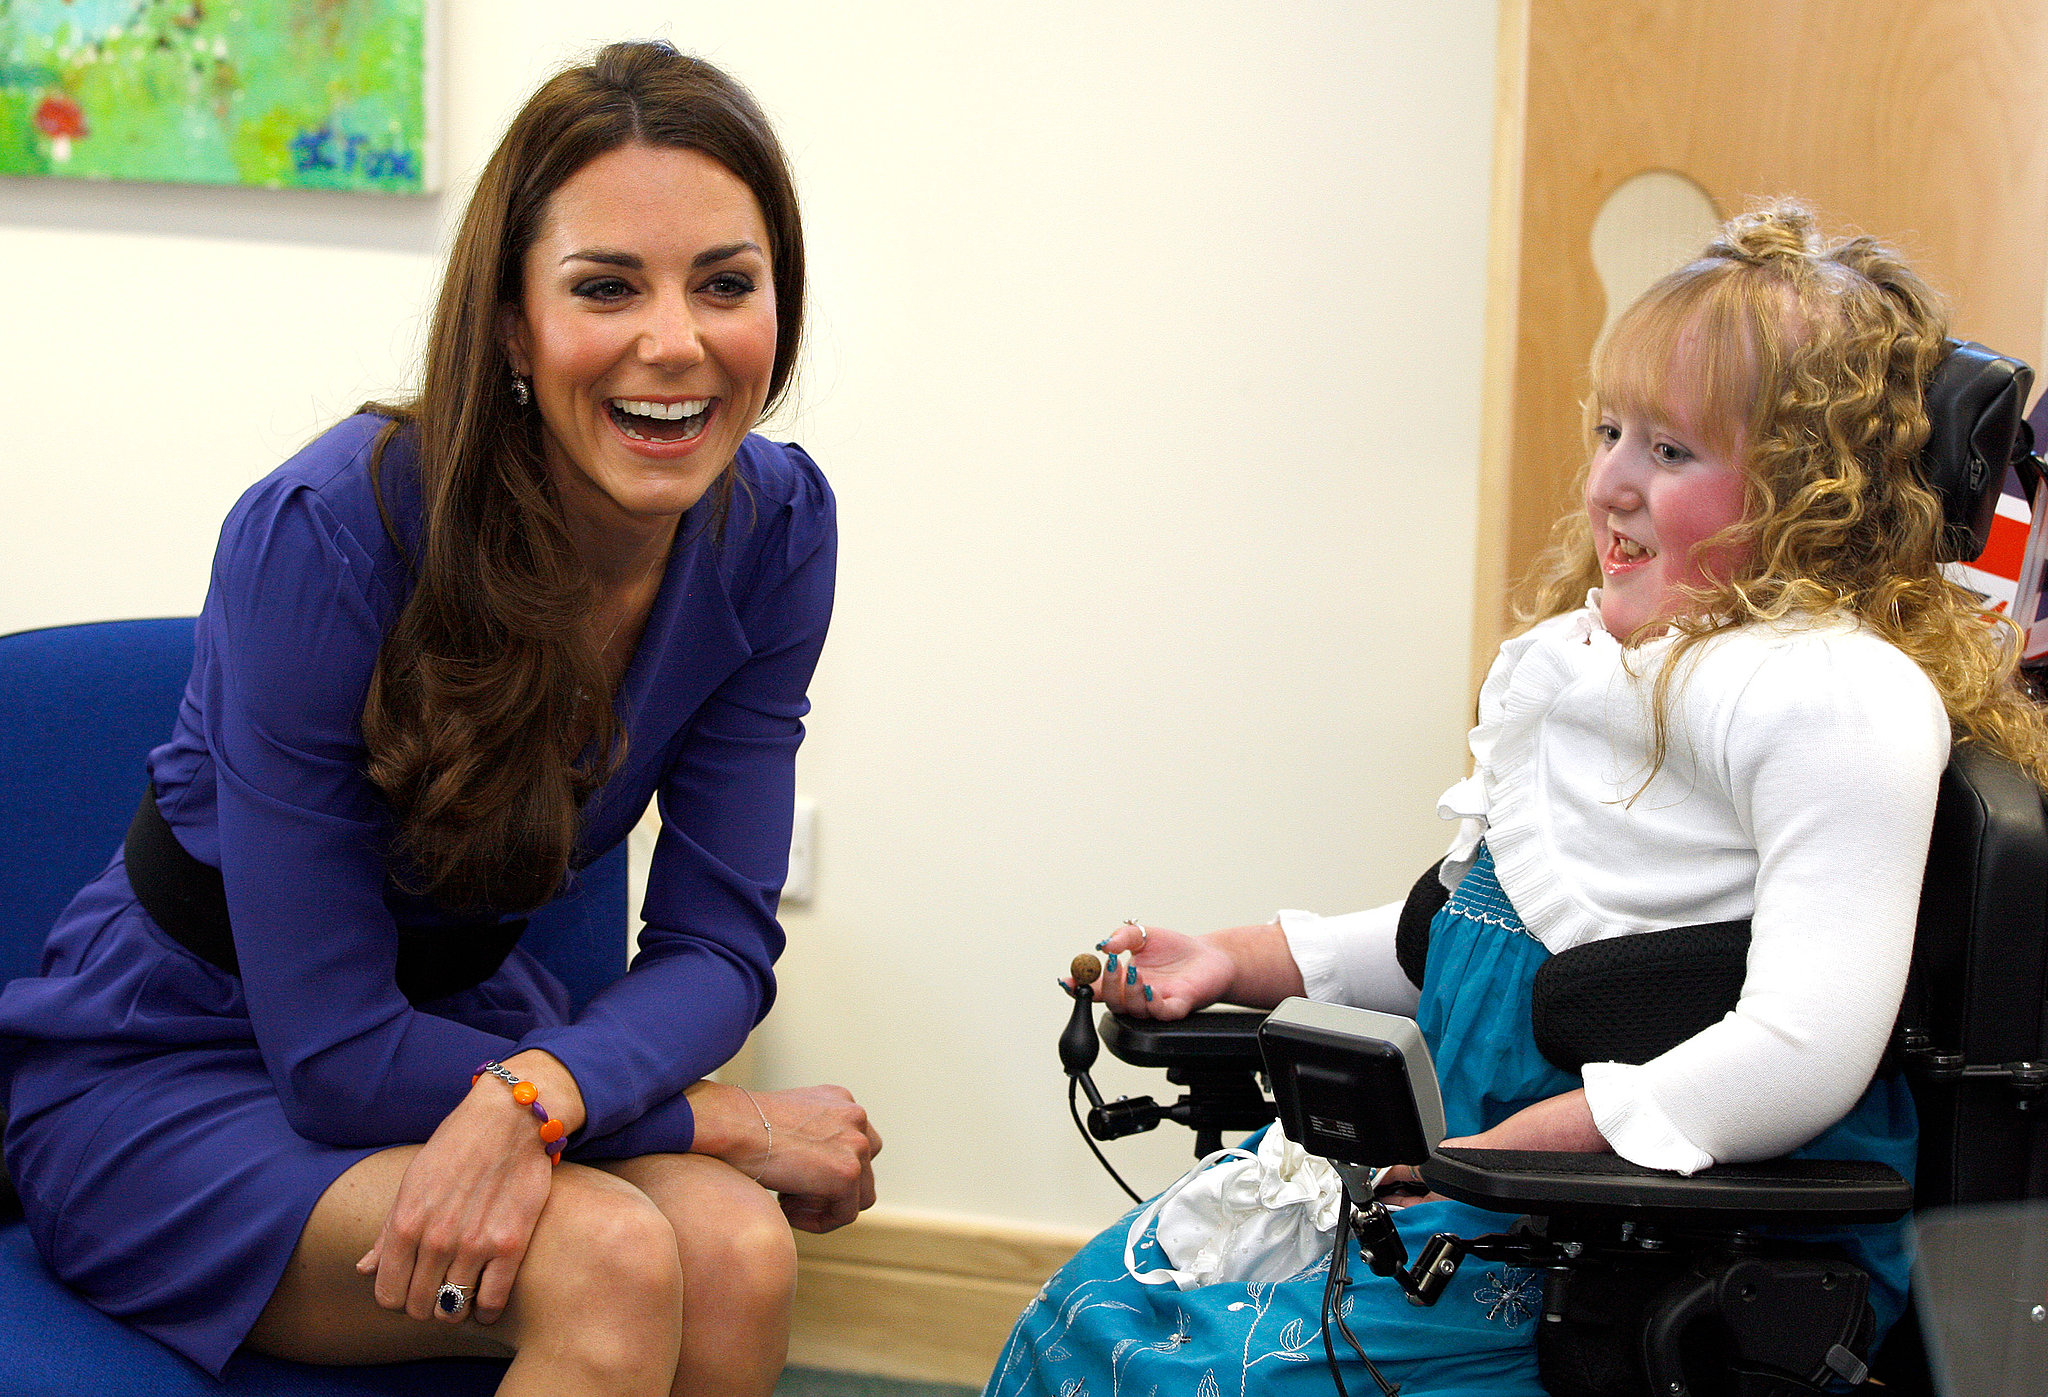 She met a young woman during a visit to The Treehouse, a children's hospice in Ipswich, England, back in March 2012.